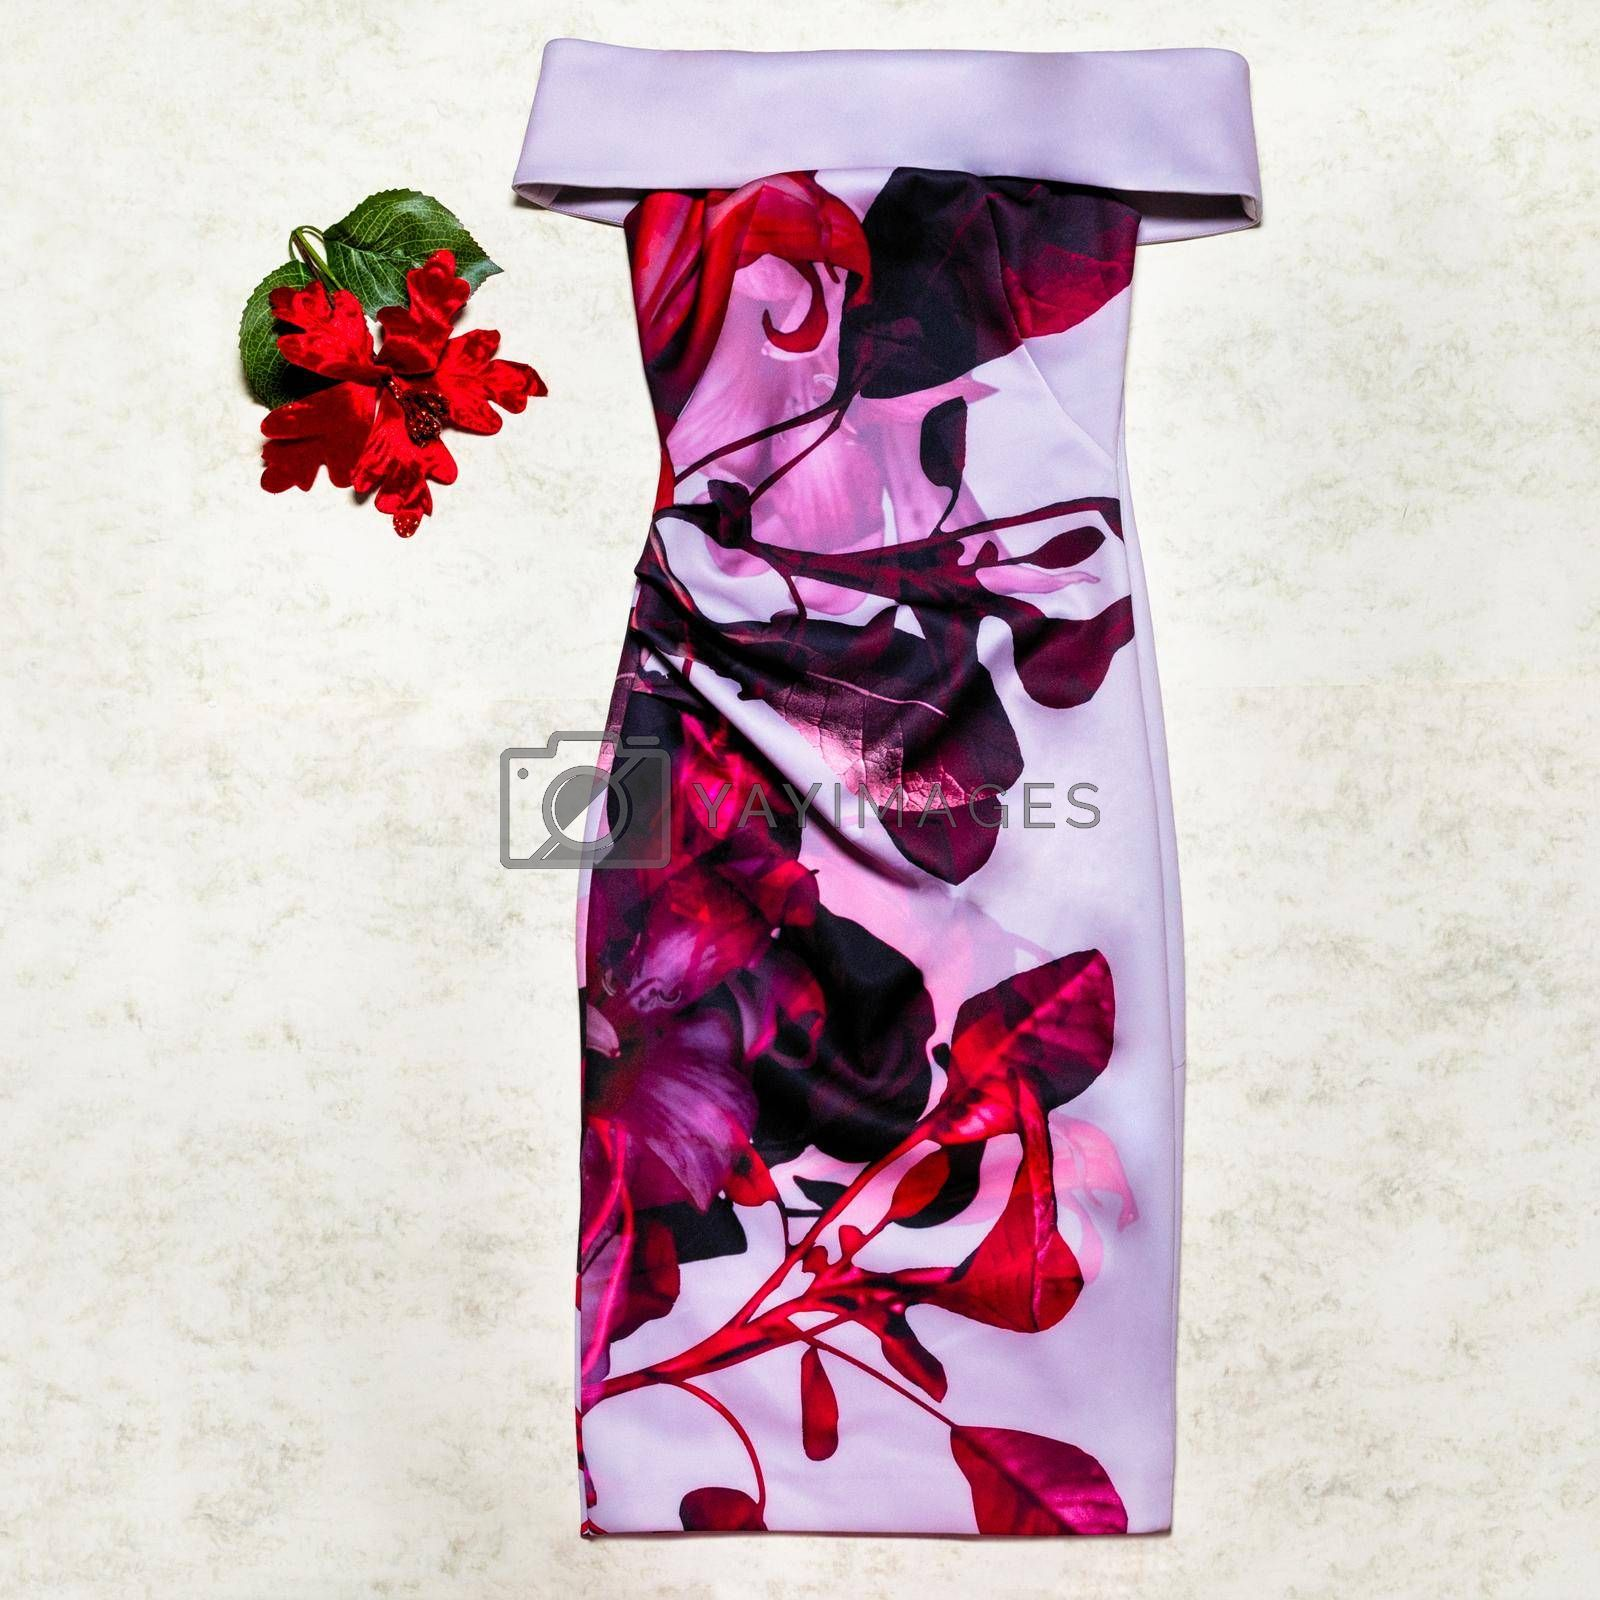 Flower style colorful woman dress top view